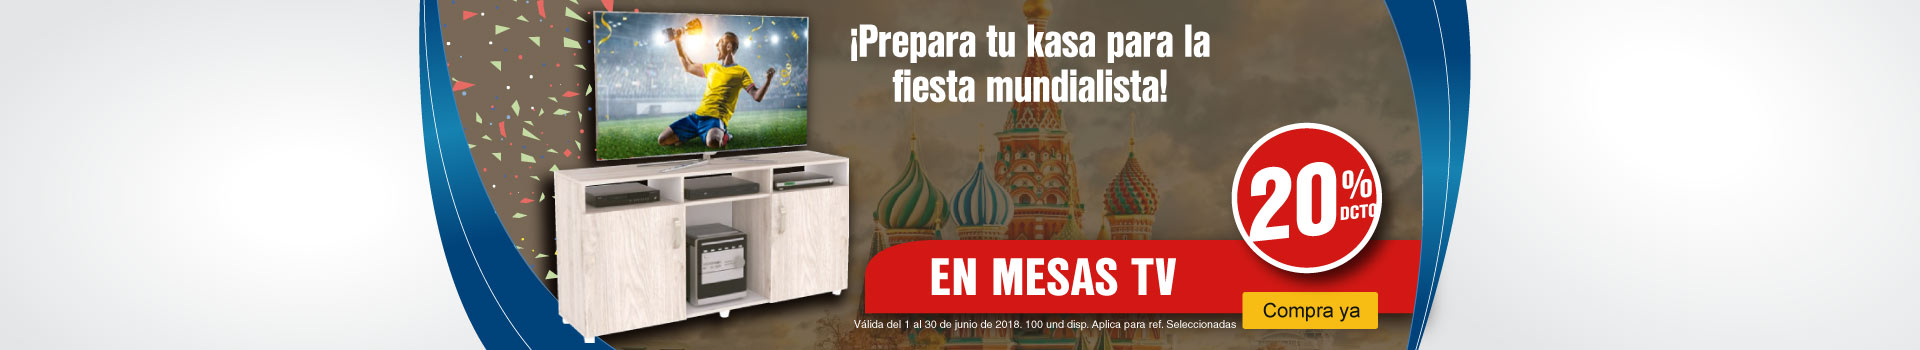 AK-BCAT-2-hogar-DCAT---Multimarca-mesastv-Jun13